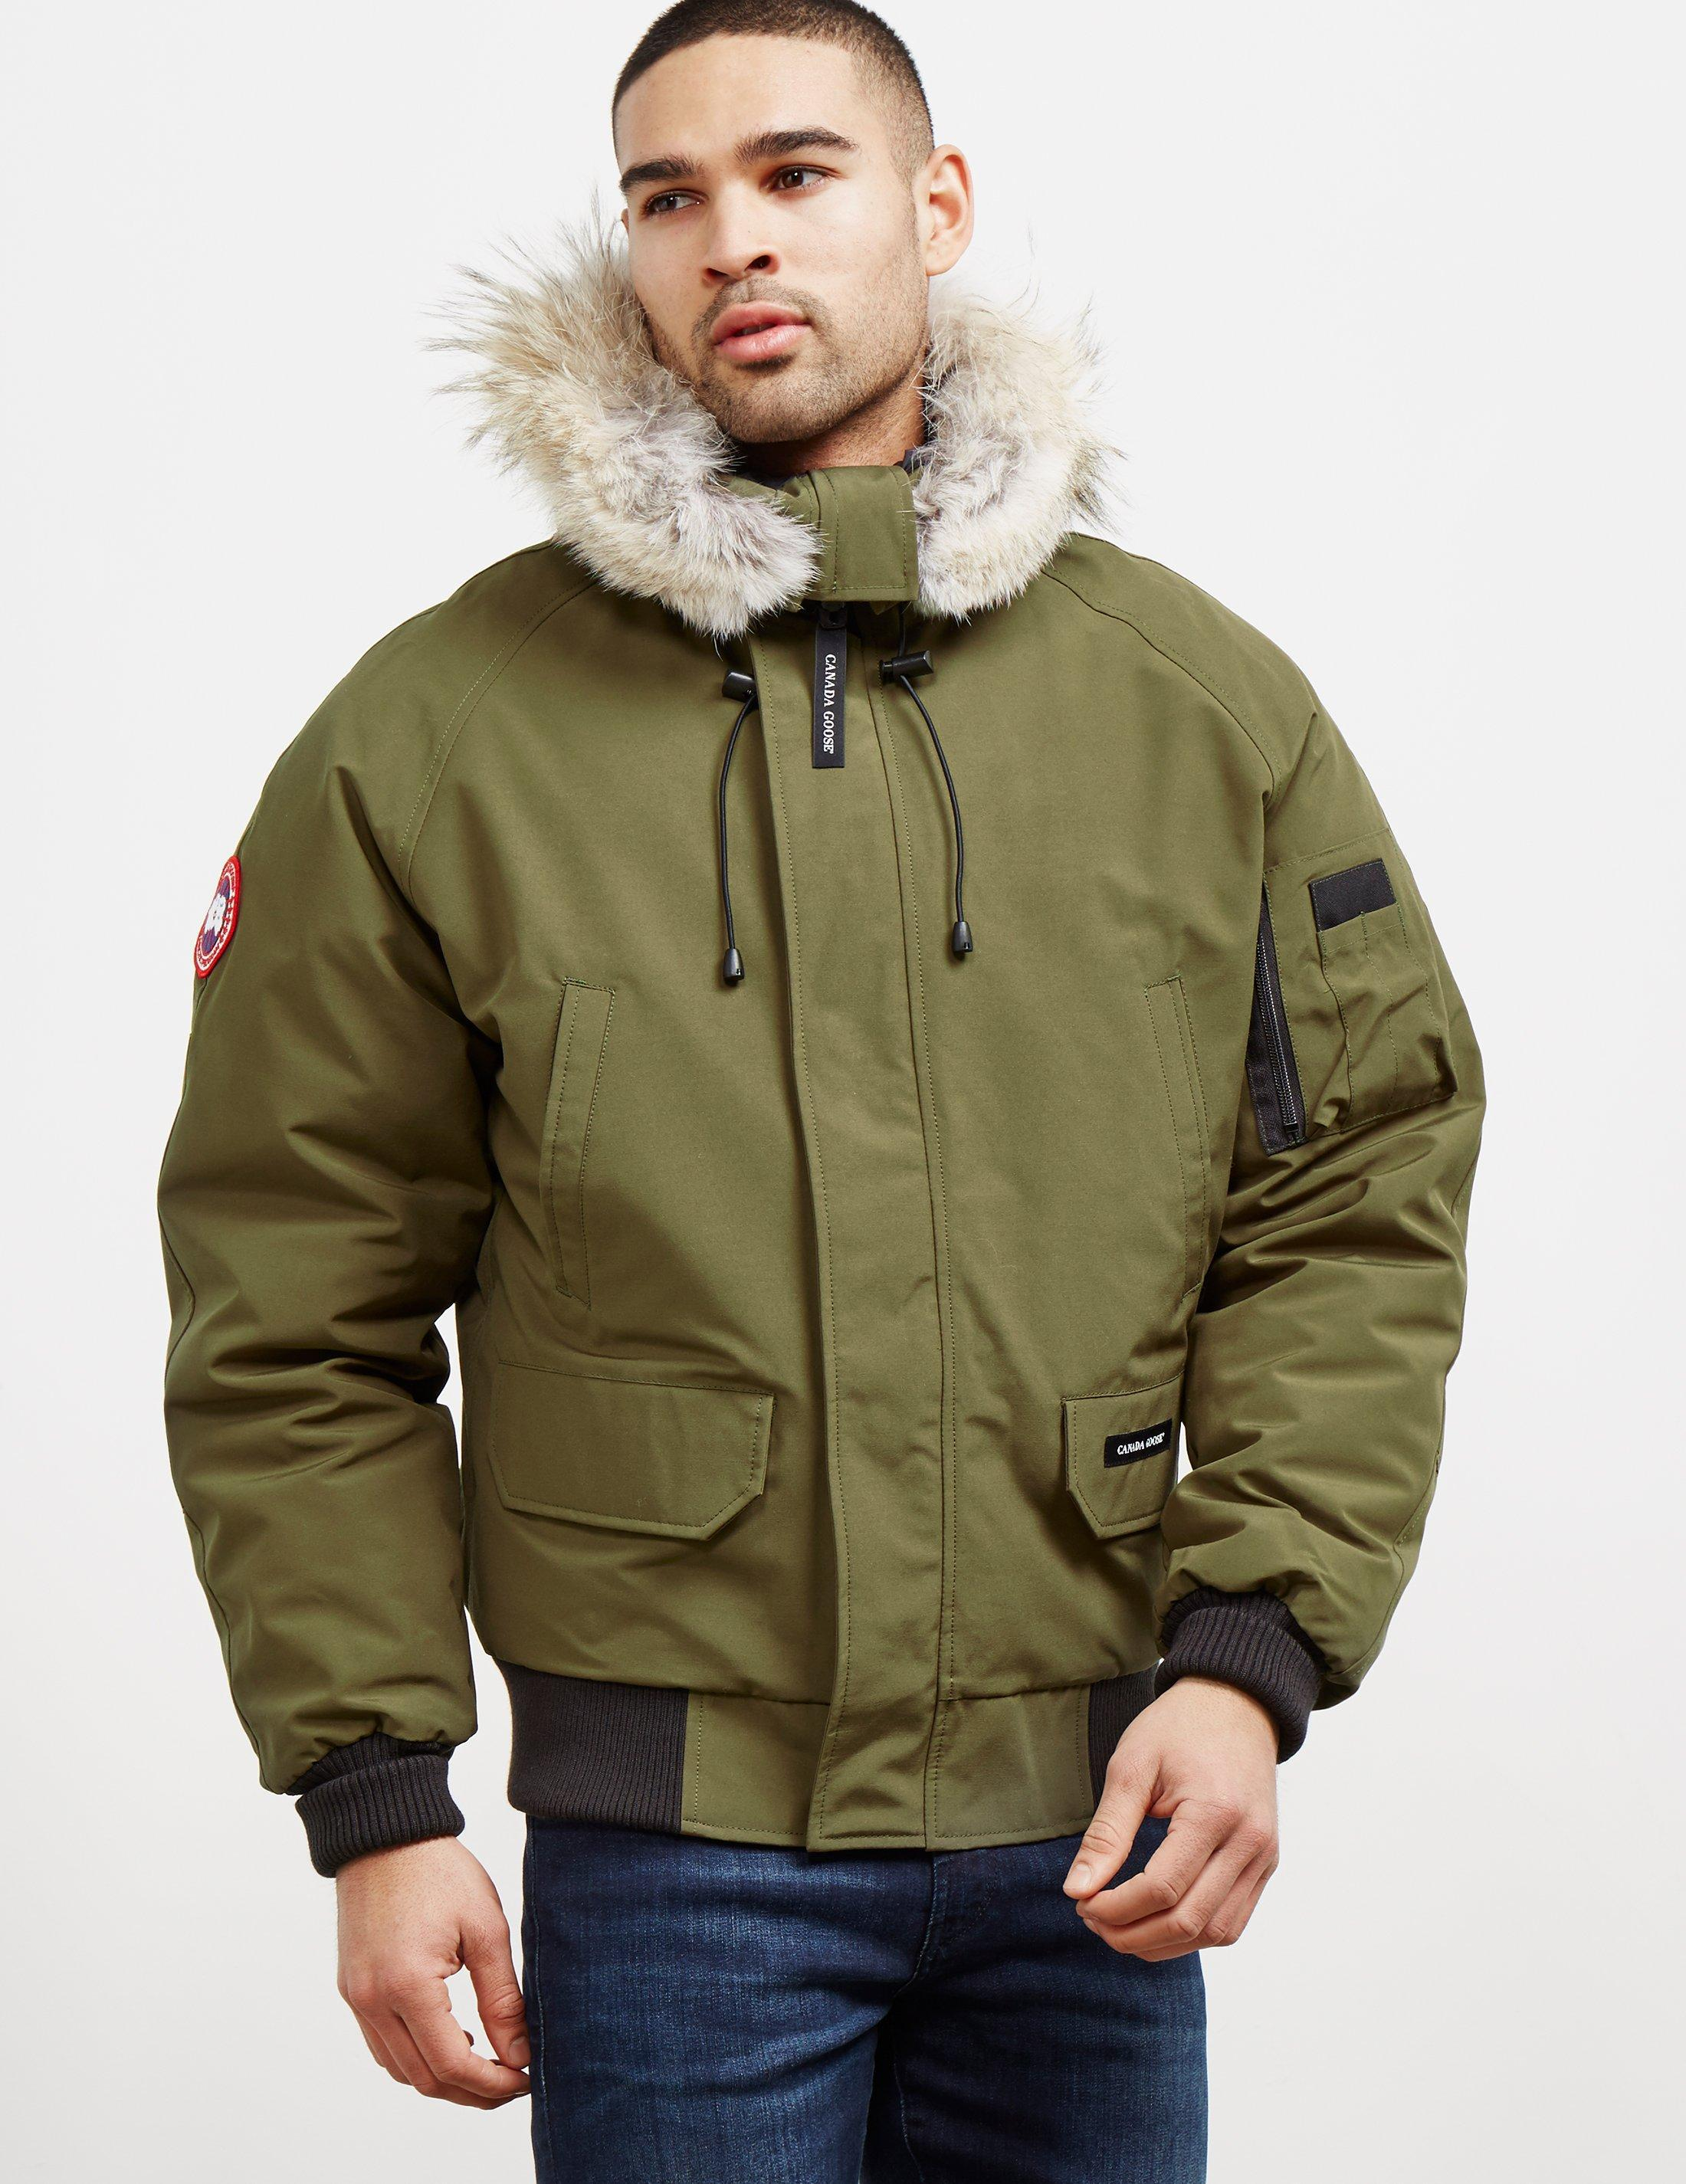 Canada Goose - Mens Chilliwack Padded Bomber Jacket Green for Men - Lyst. View fullscreen